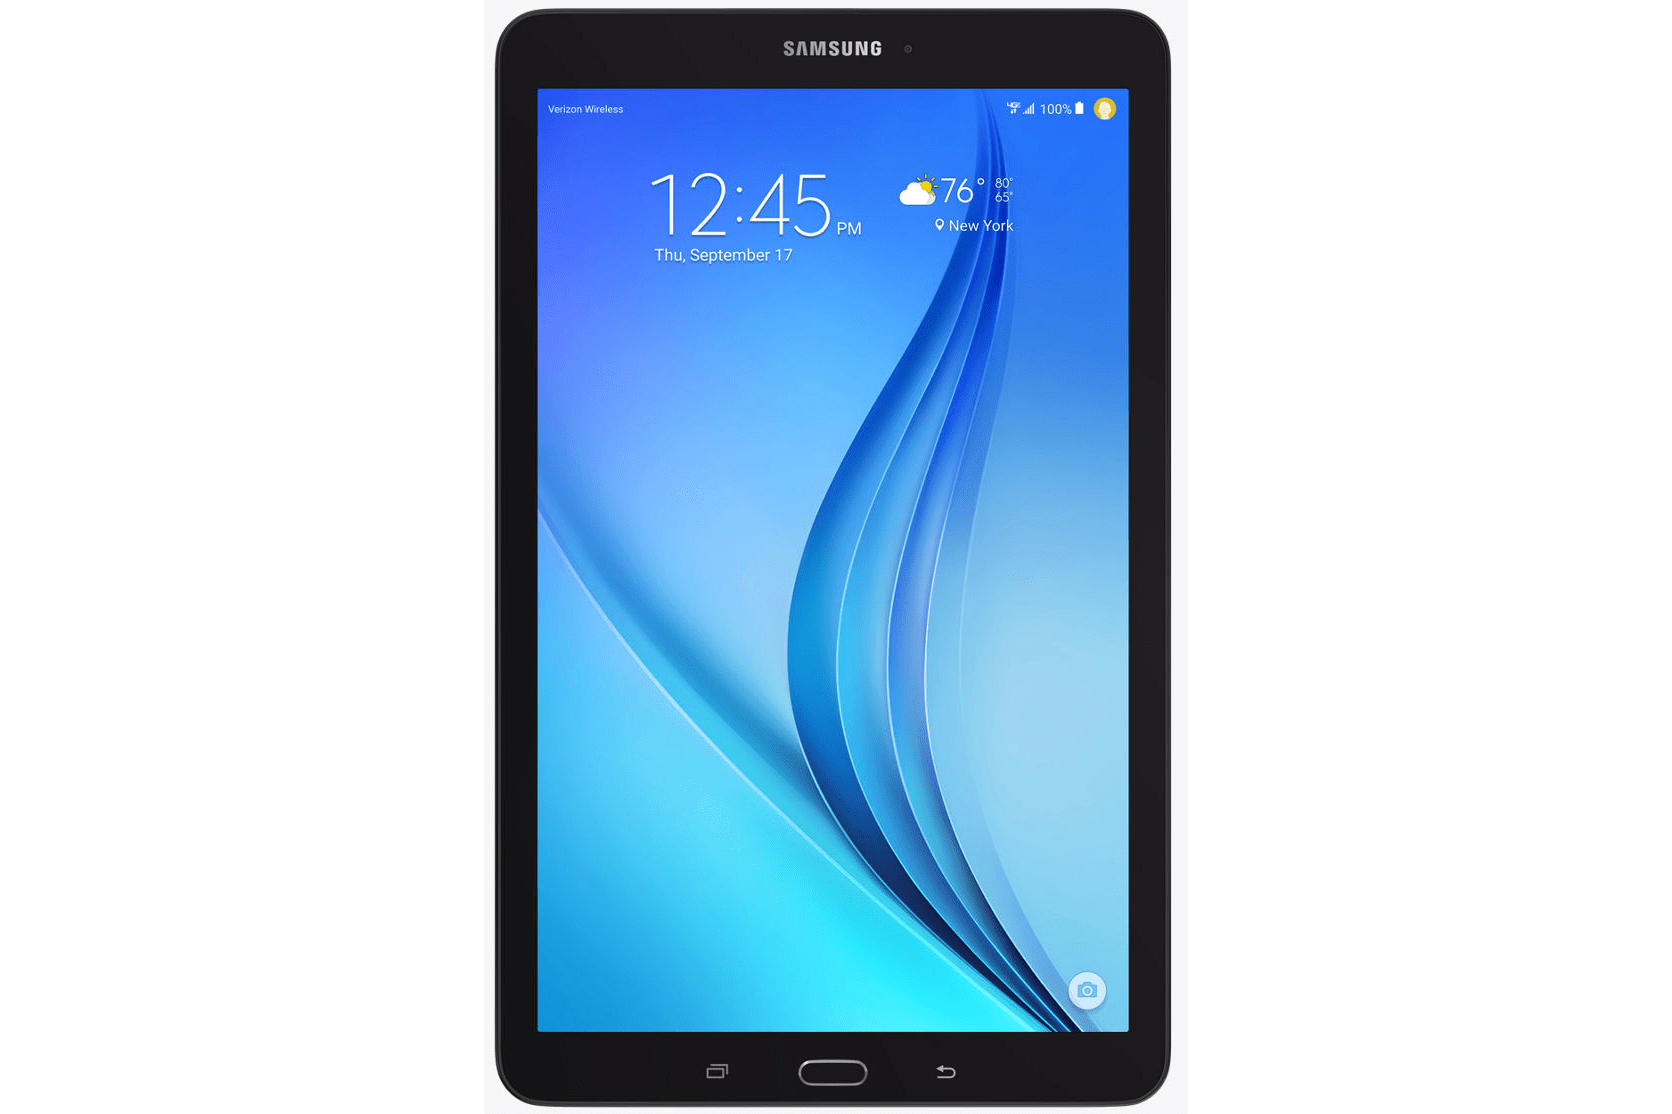 Verizon Quietly Introduces The Samsung Galaxy Tab E Thought We Wouldn T Notice - Samsung Galaxy Tab E